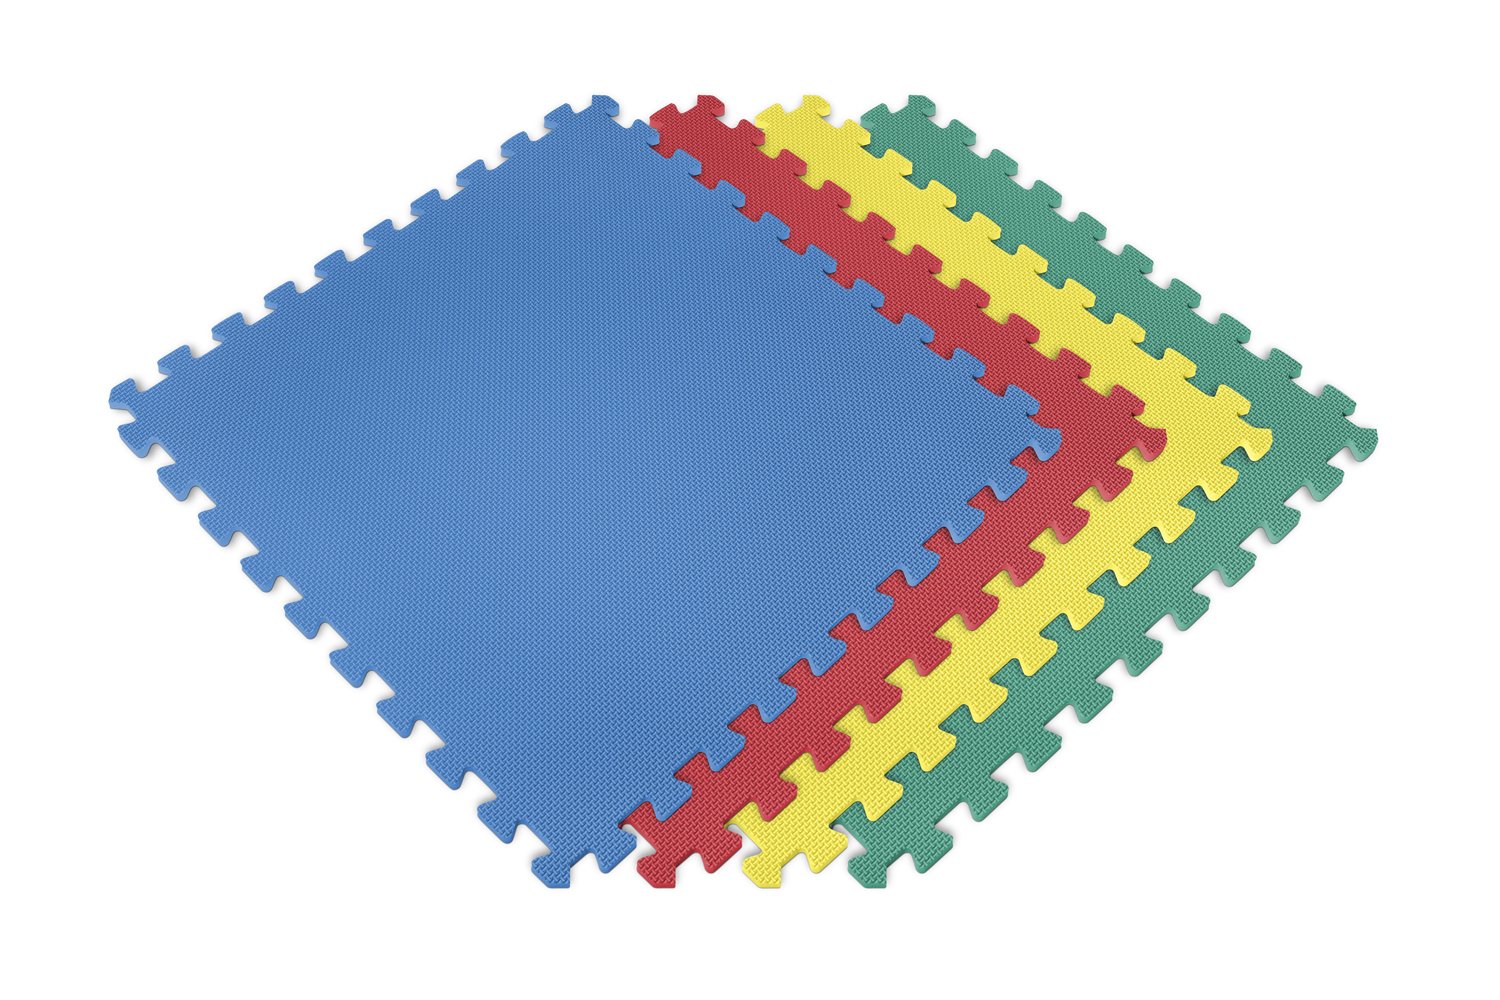 mats floor costco foam easy interlocking john install decor rubber tiles robinson